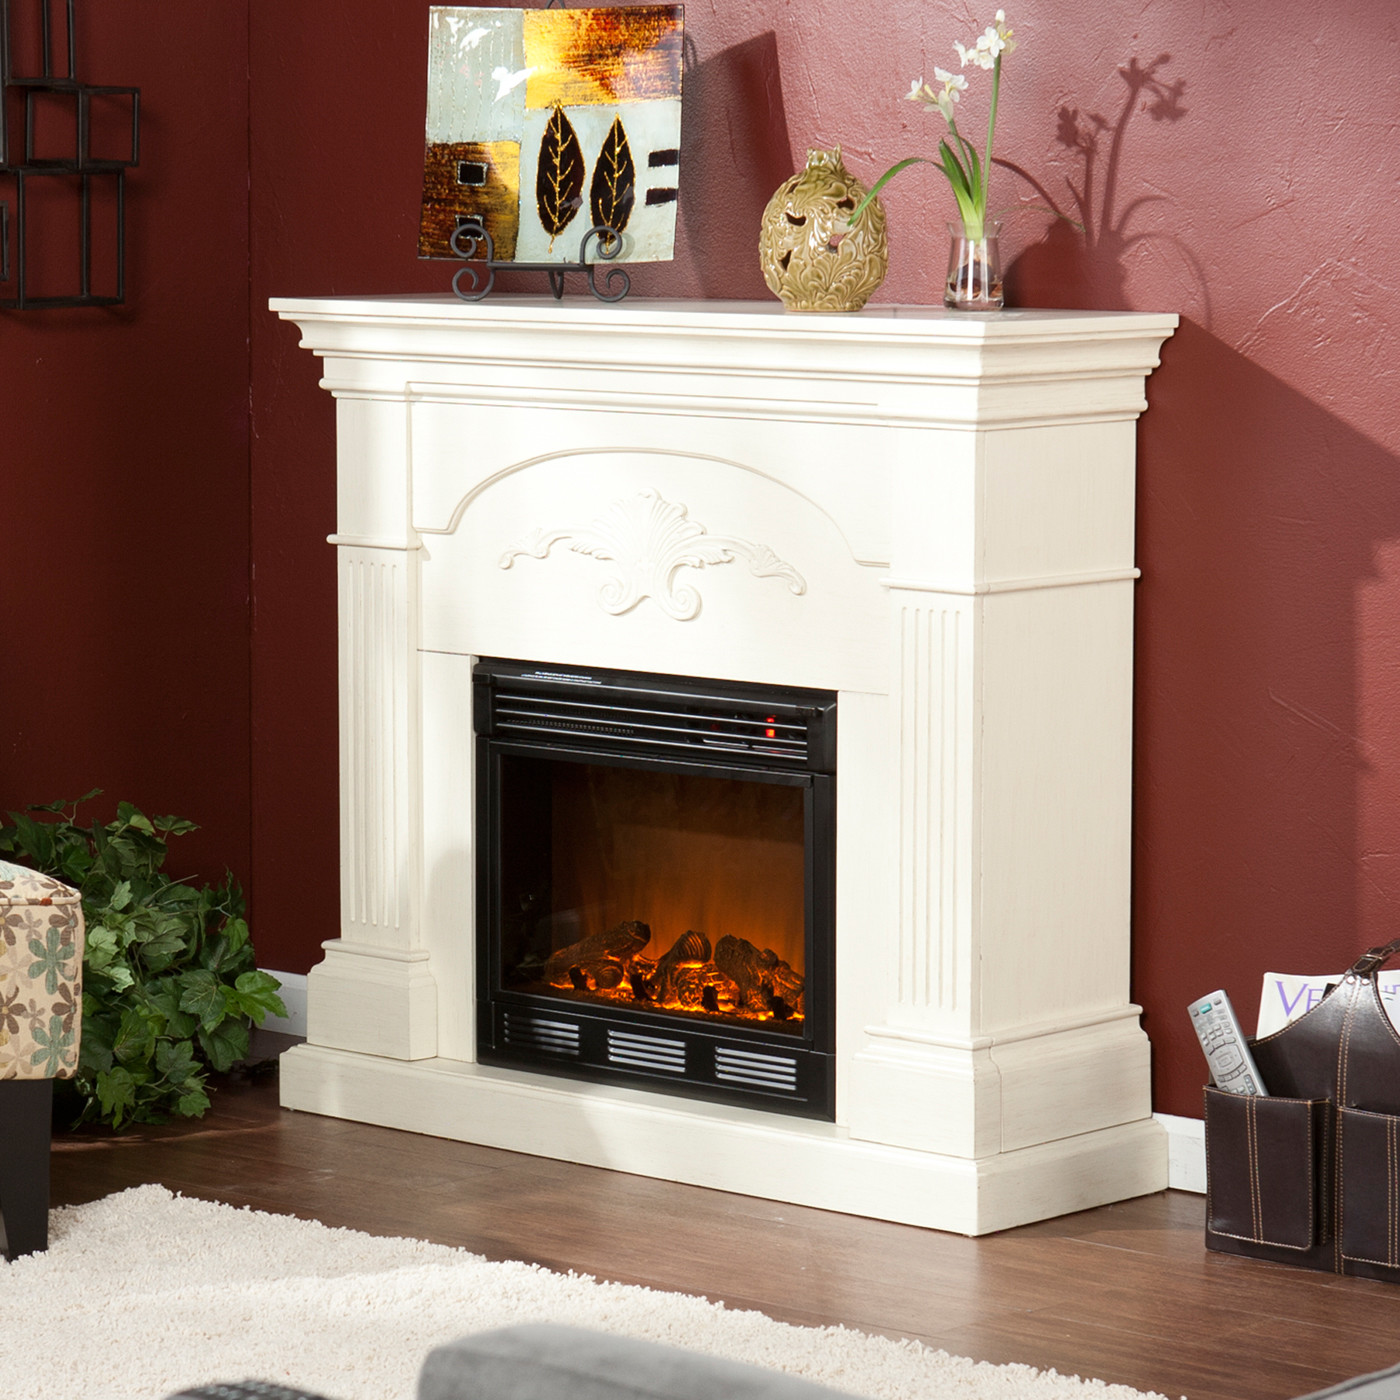 Mdf Fireplace Surround | Mantel Shelf Lowes | Lowes Fireplace Mantel